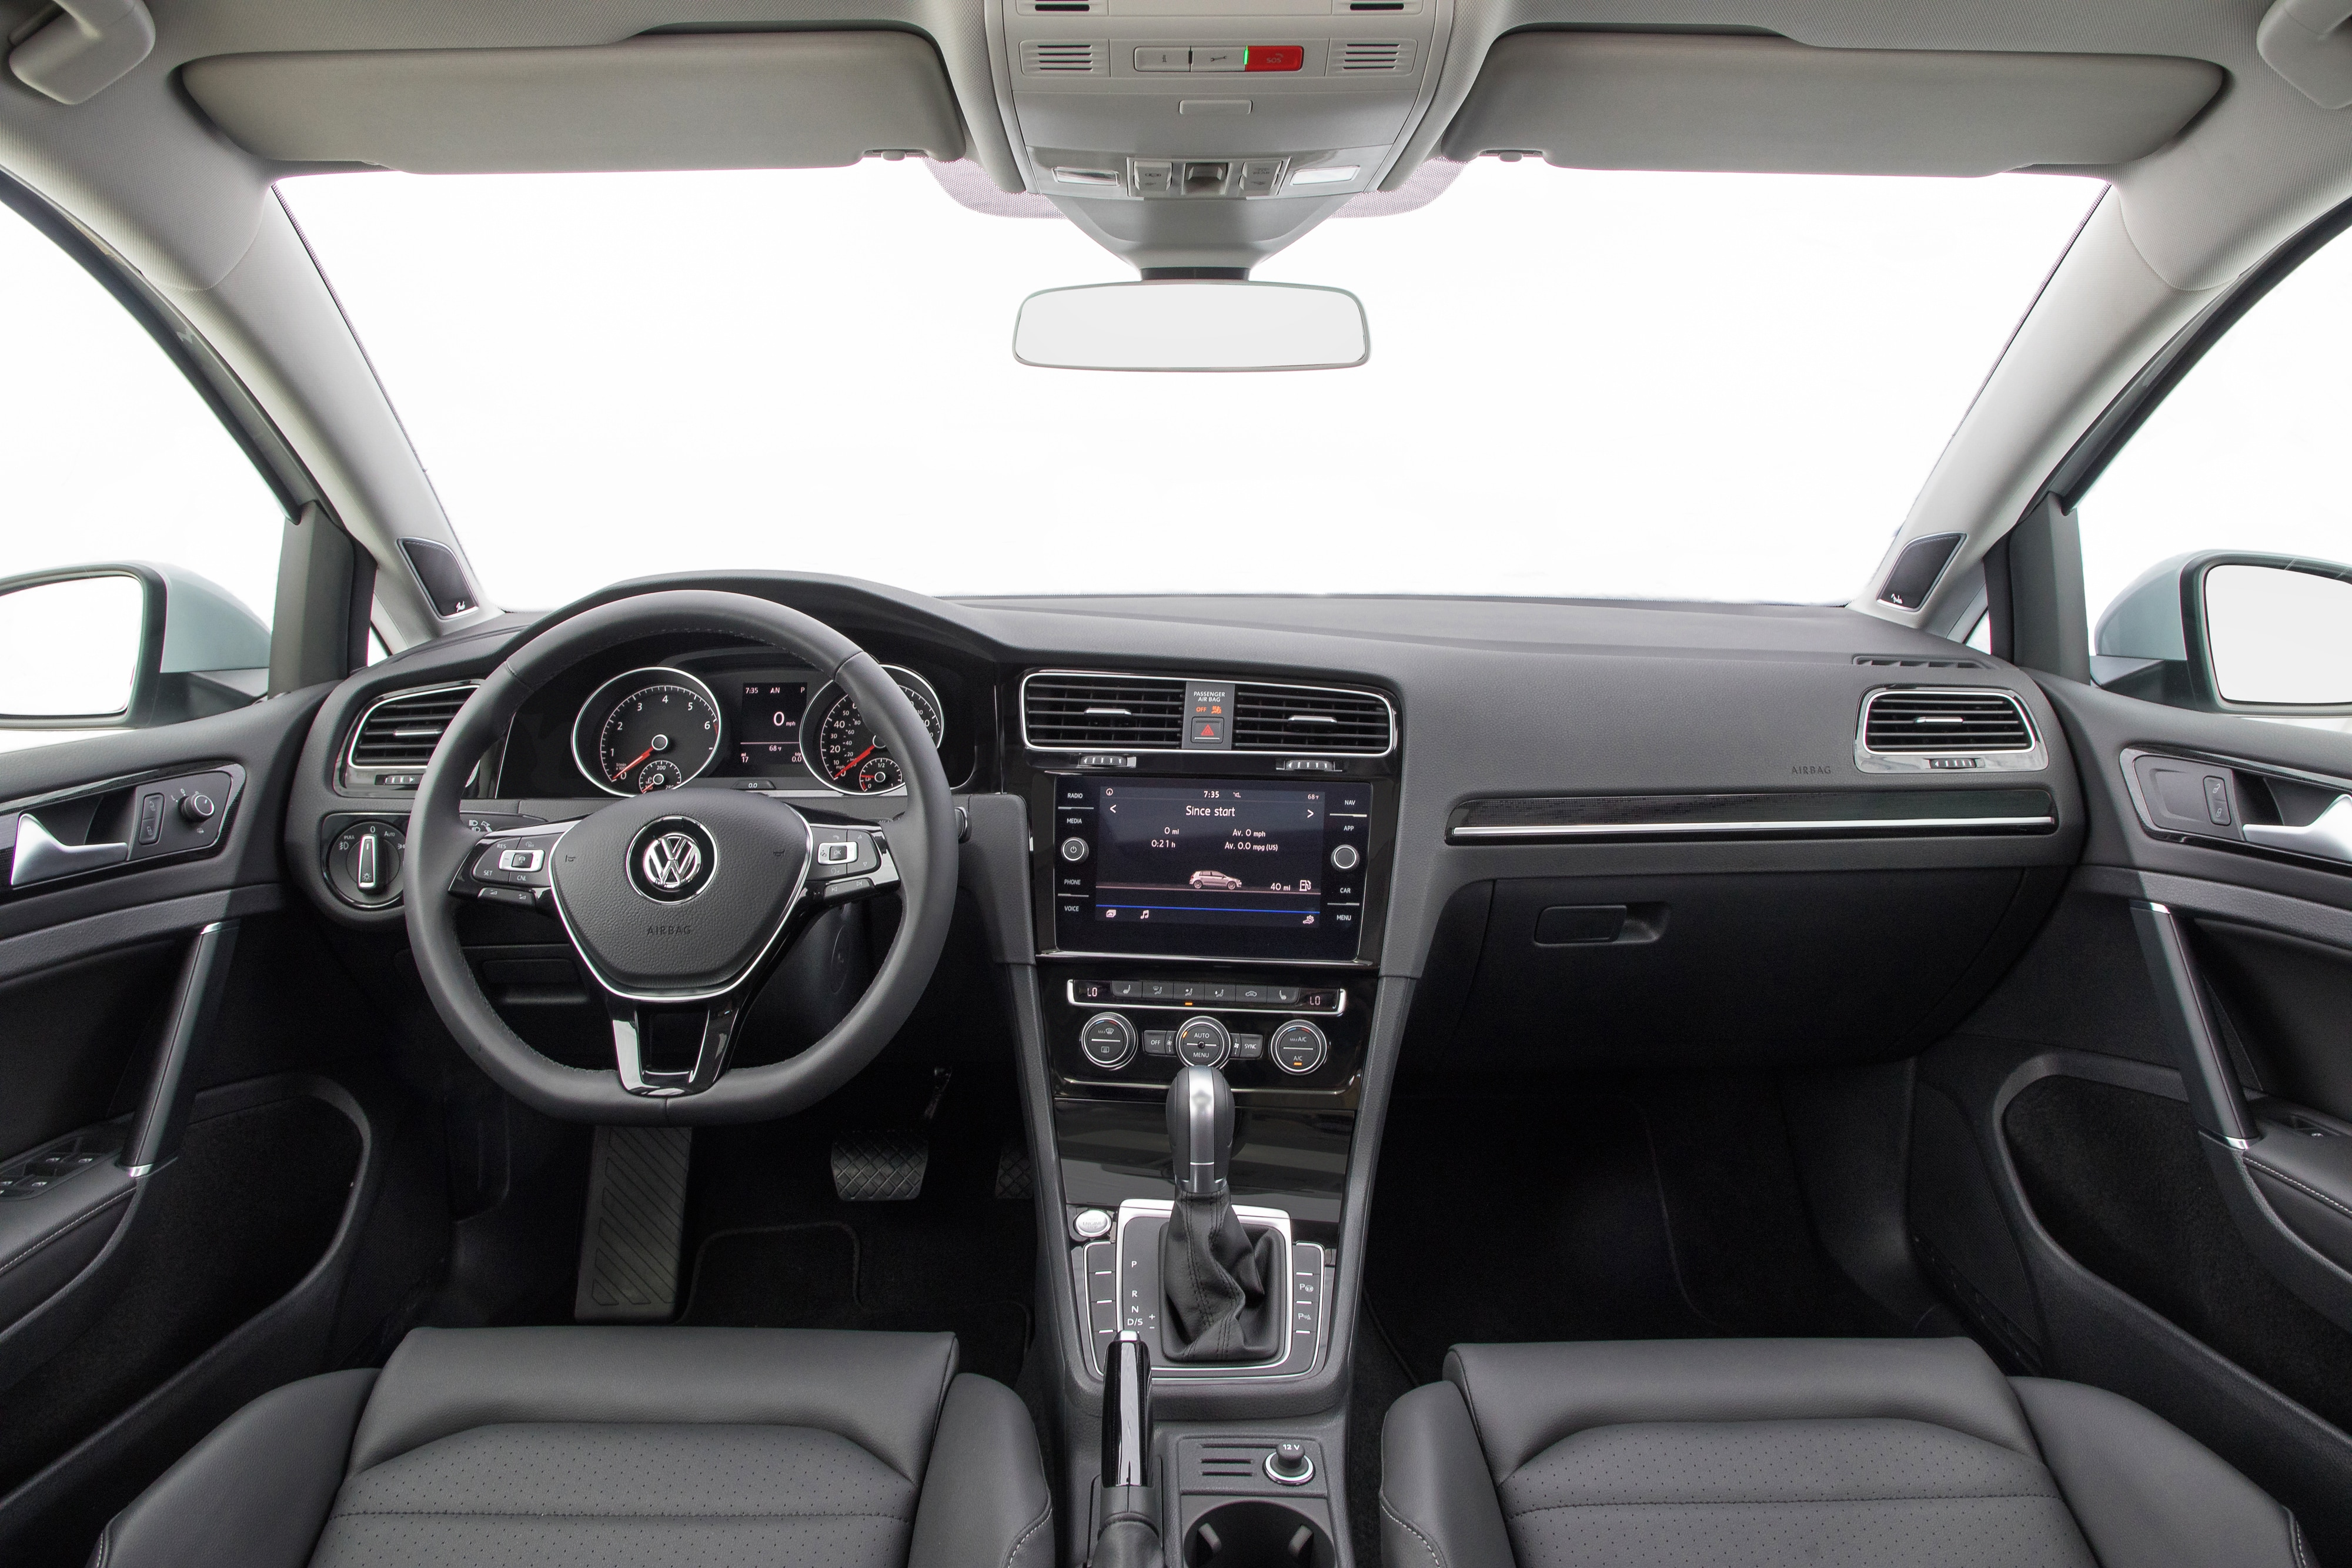 cars about gti capsule the review truth golf vw interior volkswagen parts